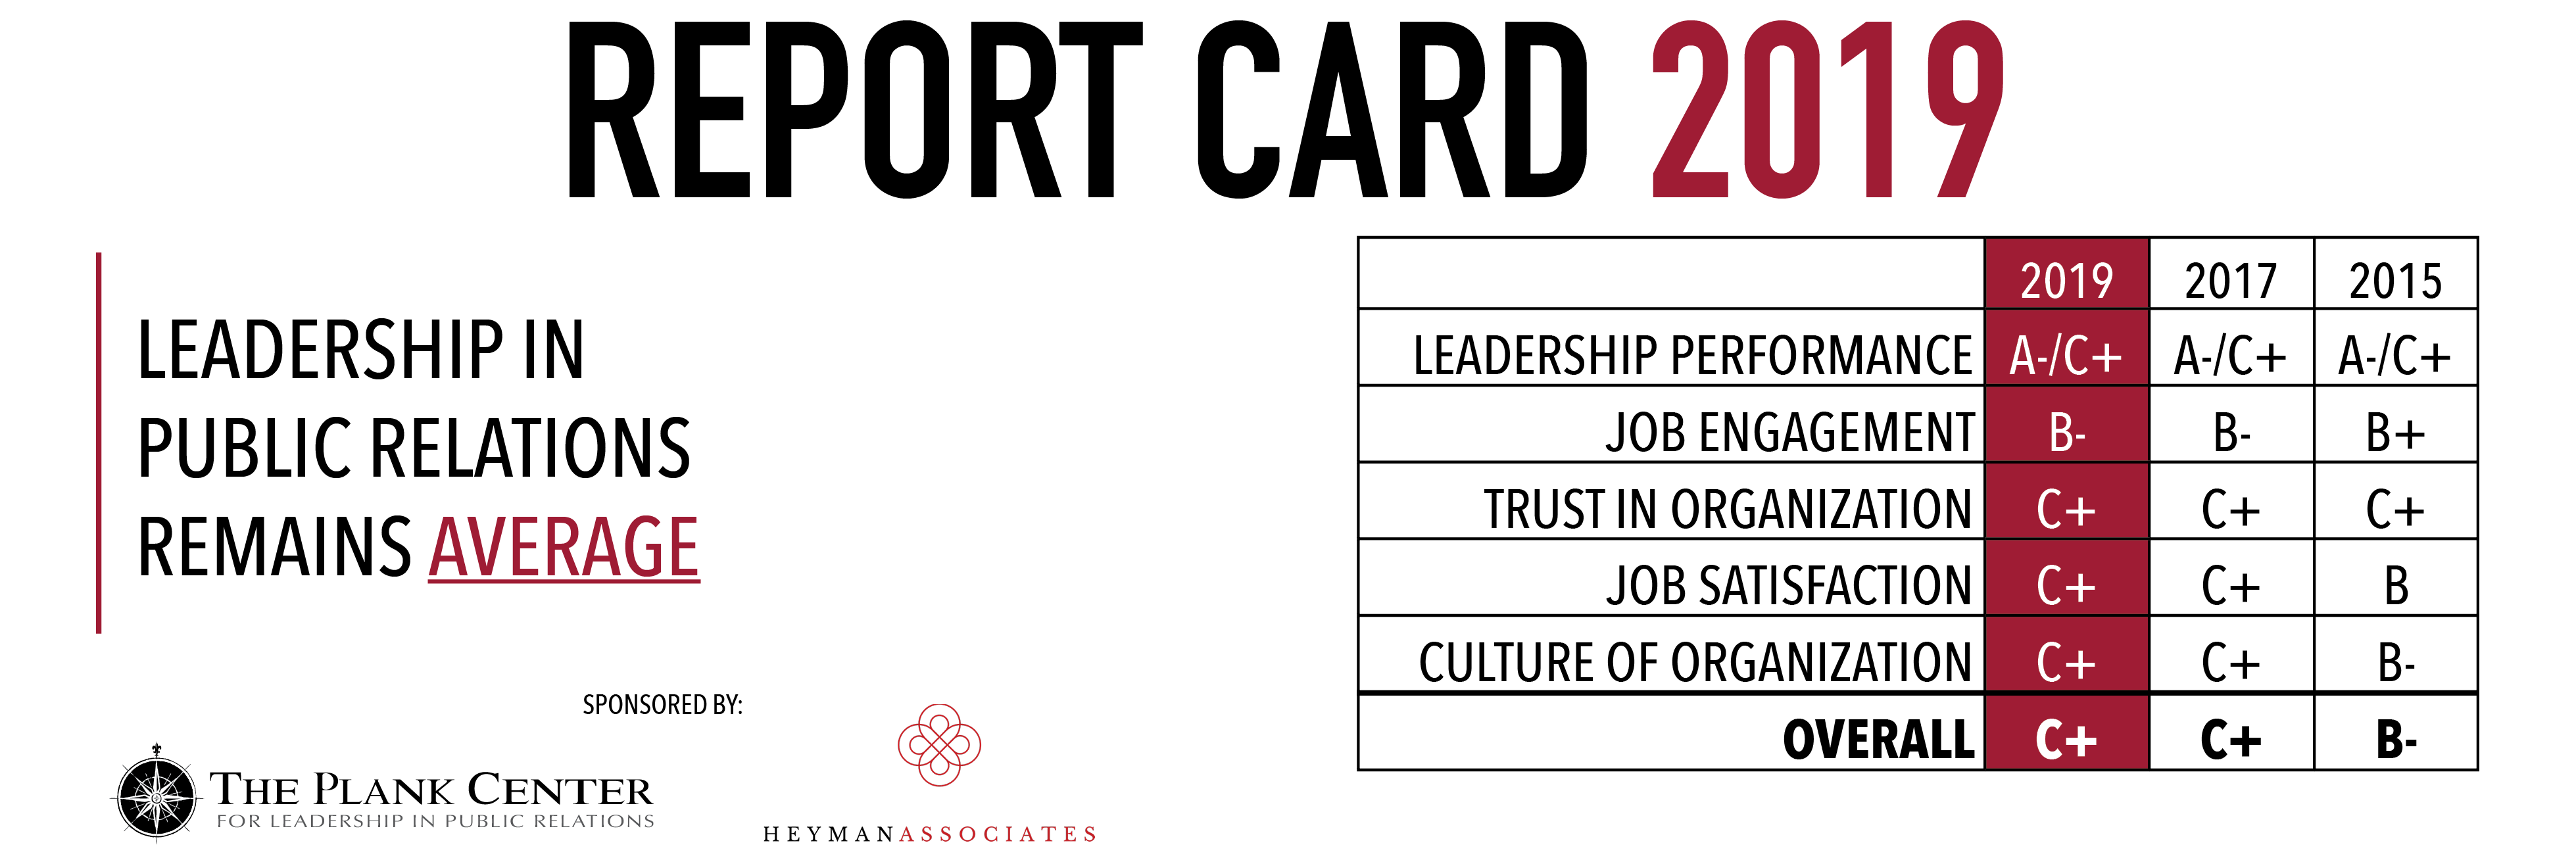 "According to the Plank Center's Report Card 2019, PR leaders received an overall grade of ""C+"", reflecting little change from previous studies in 2015 and 2017."